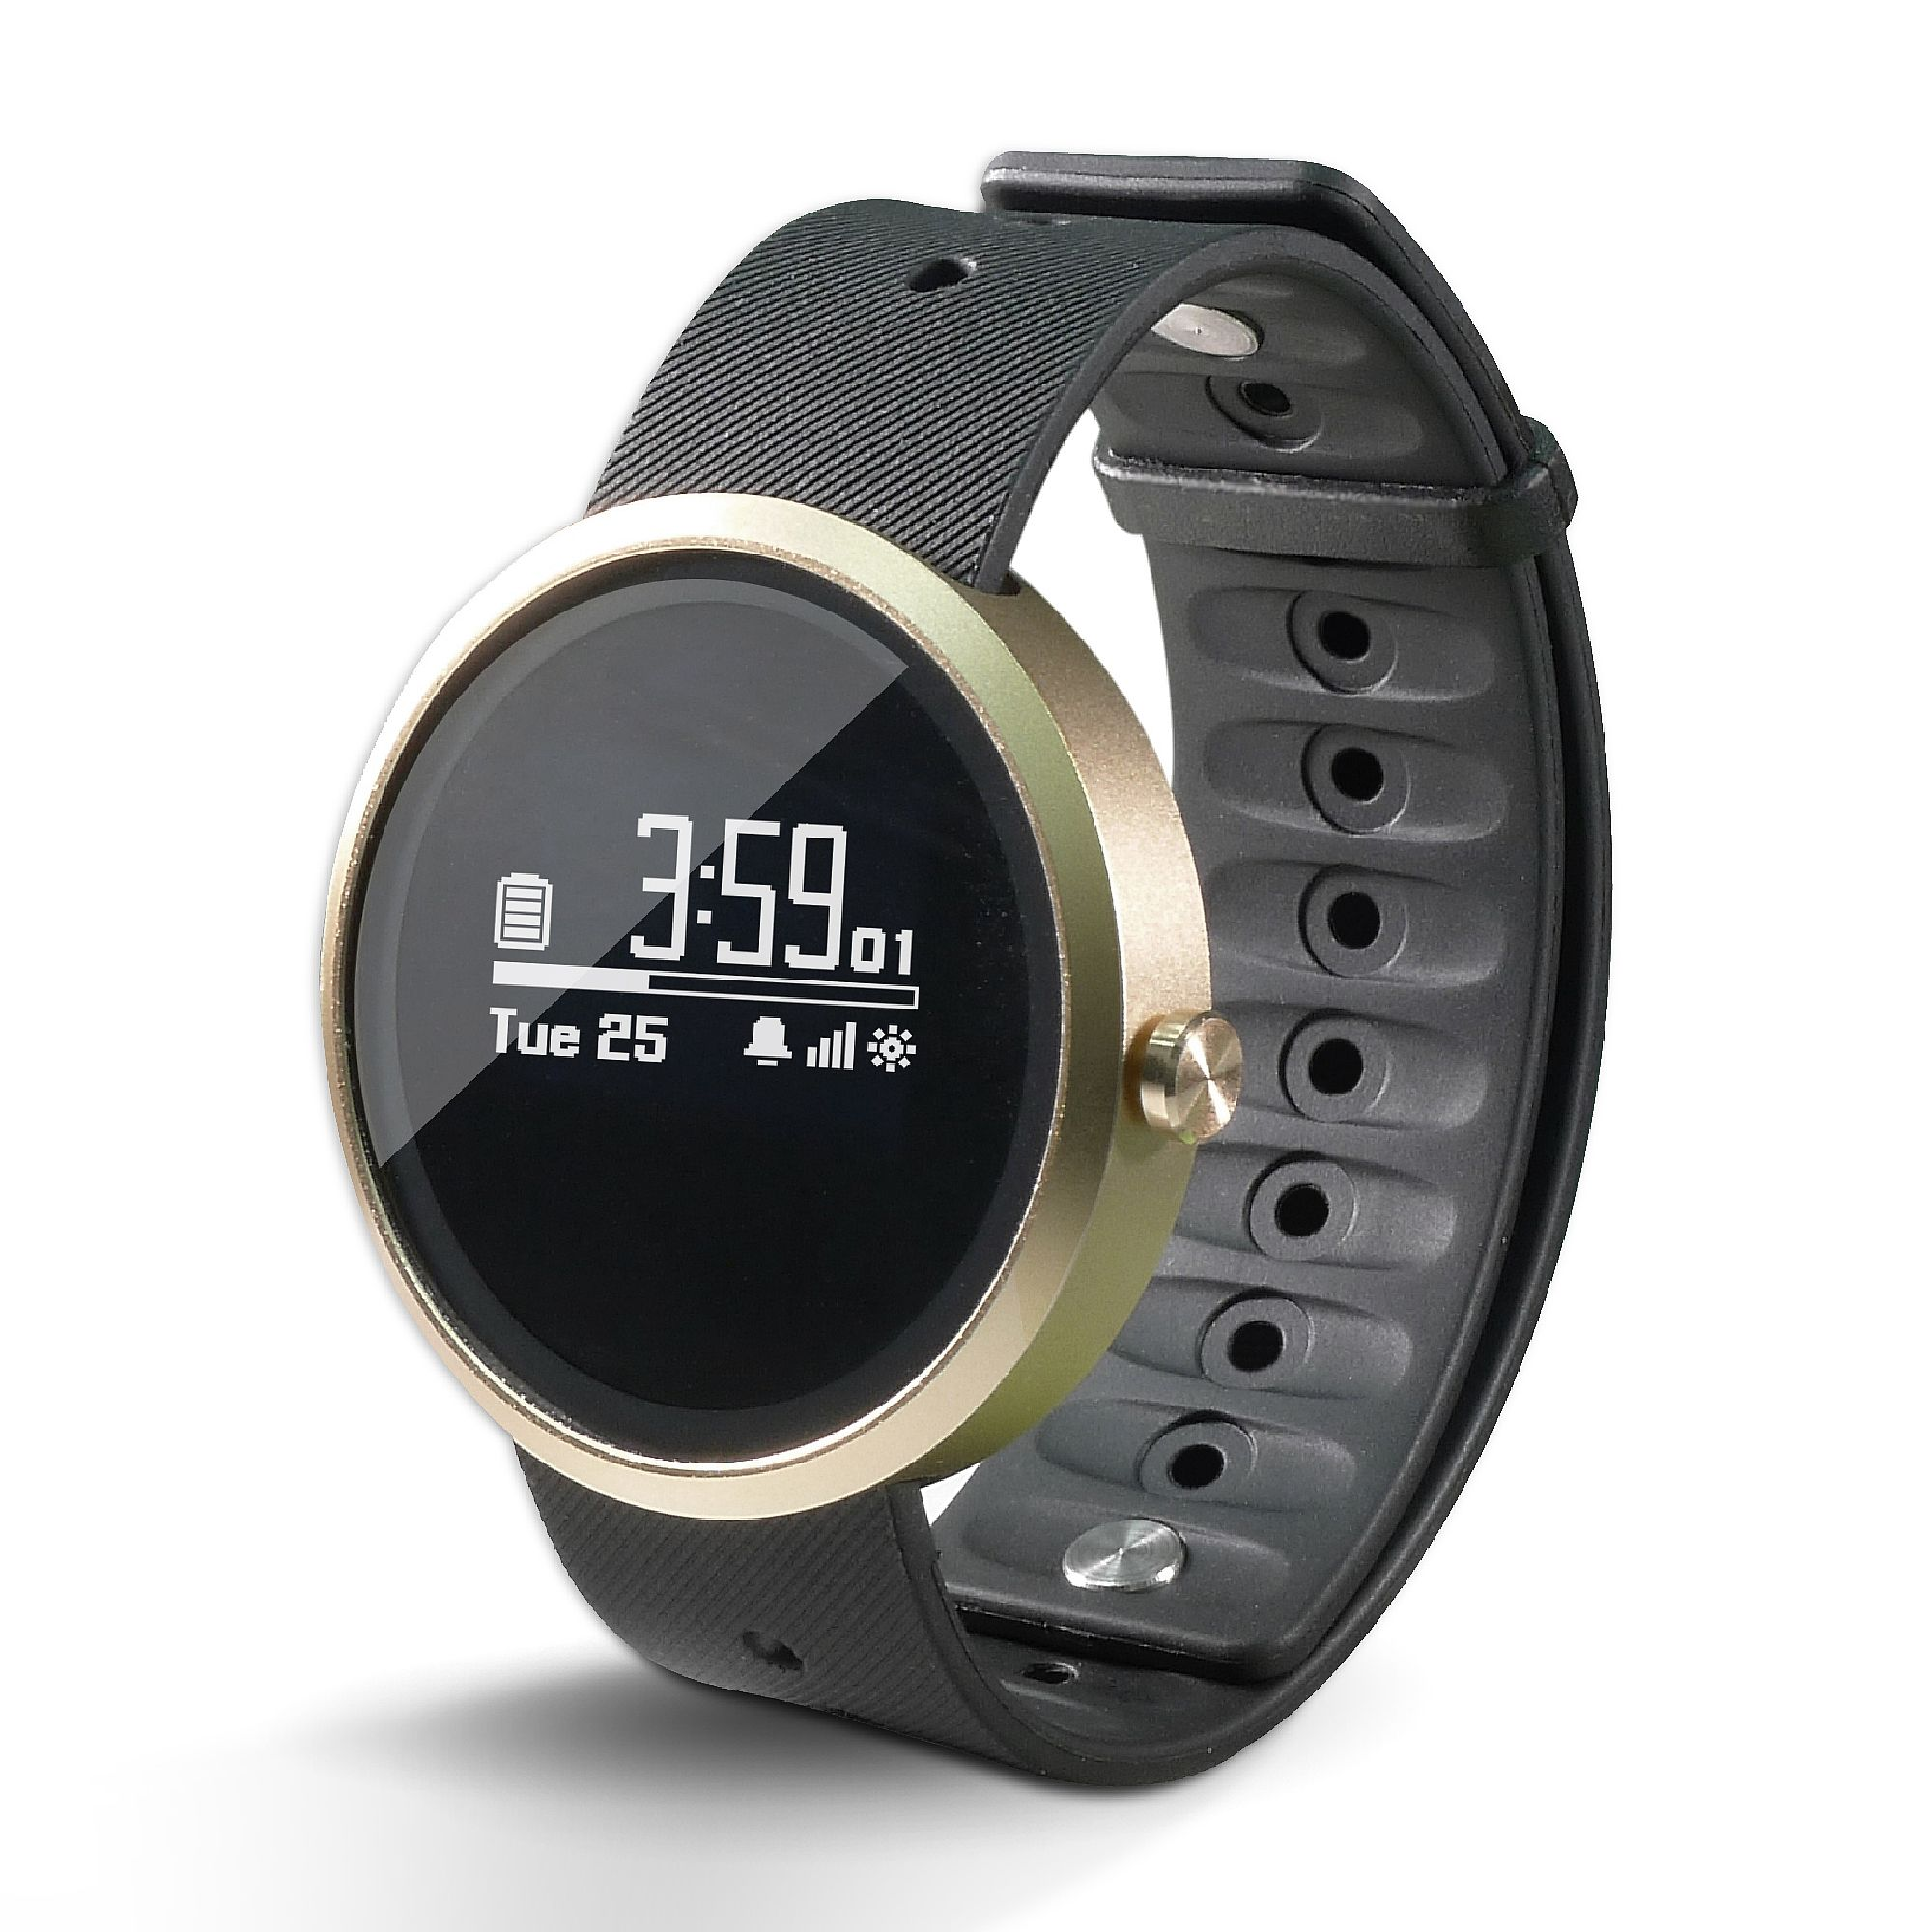 pebbles smart obsession have focused new watches smartwatches fitness a s gizmodo pebble